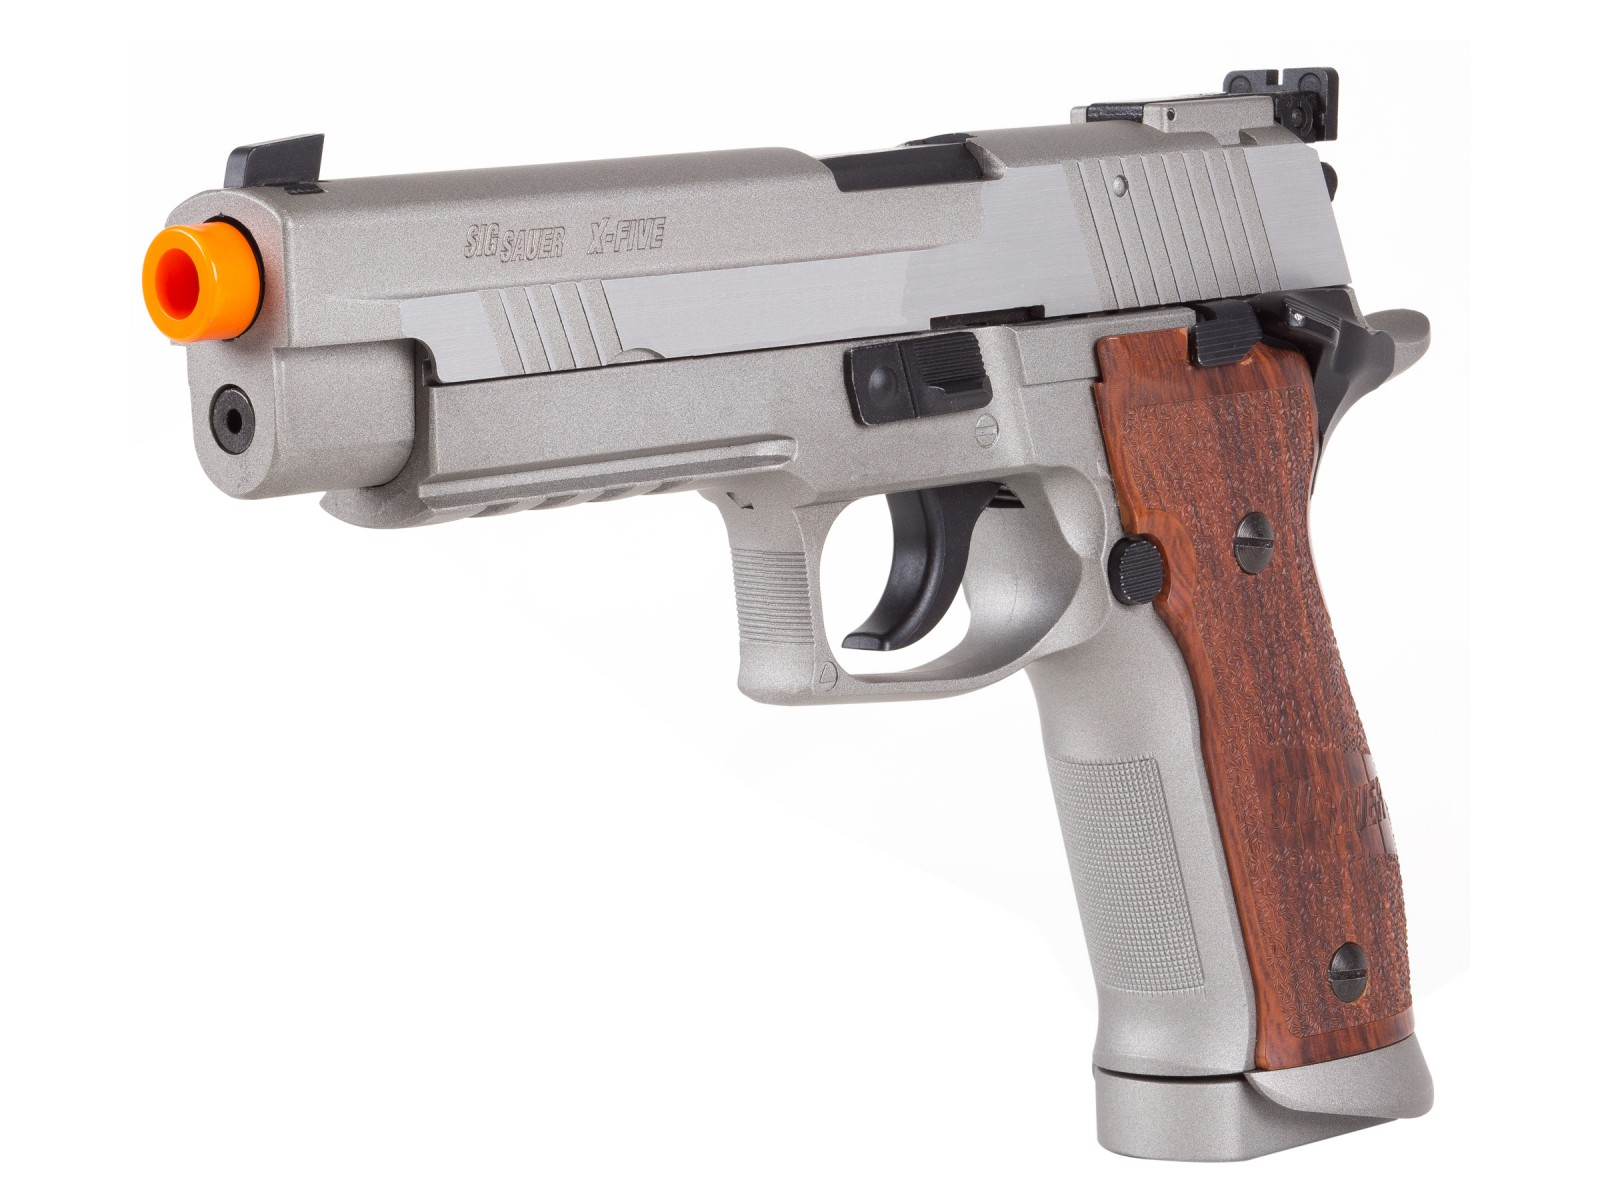 SIG_Sauer_P226_XFIVE_Metal_Co2_GBB_Airsoft_Pistol_Silver_6mm